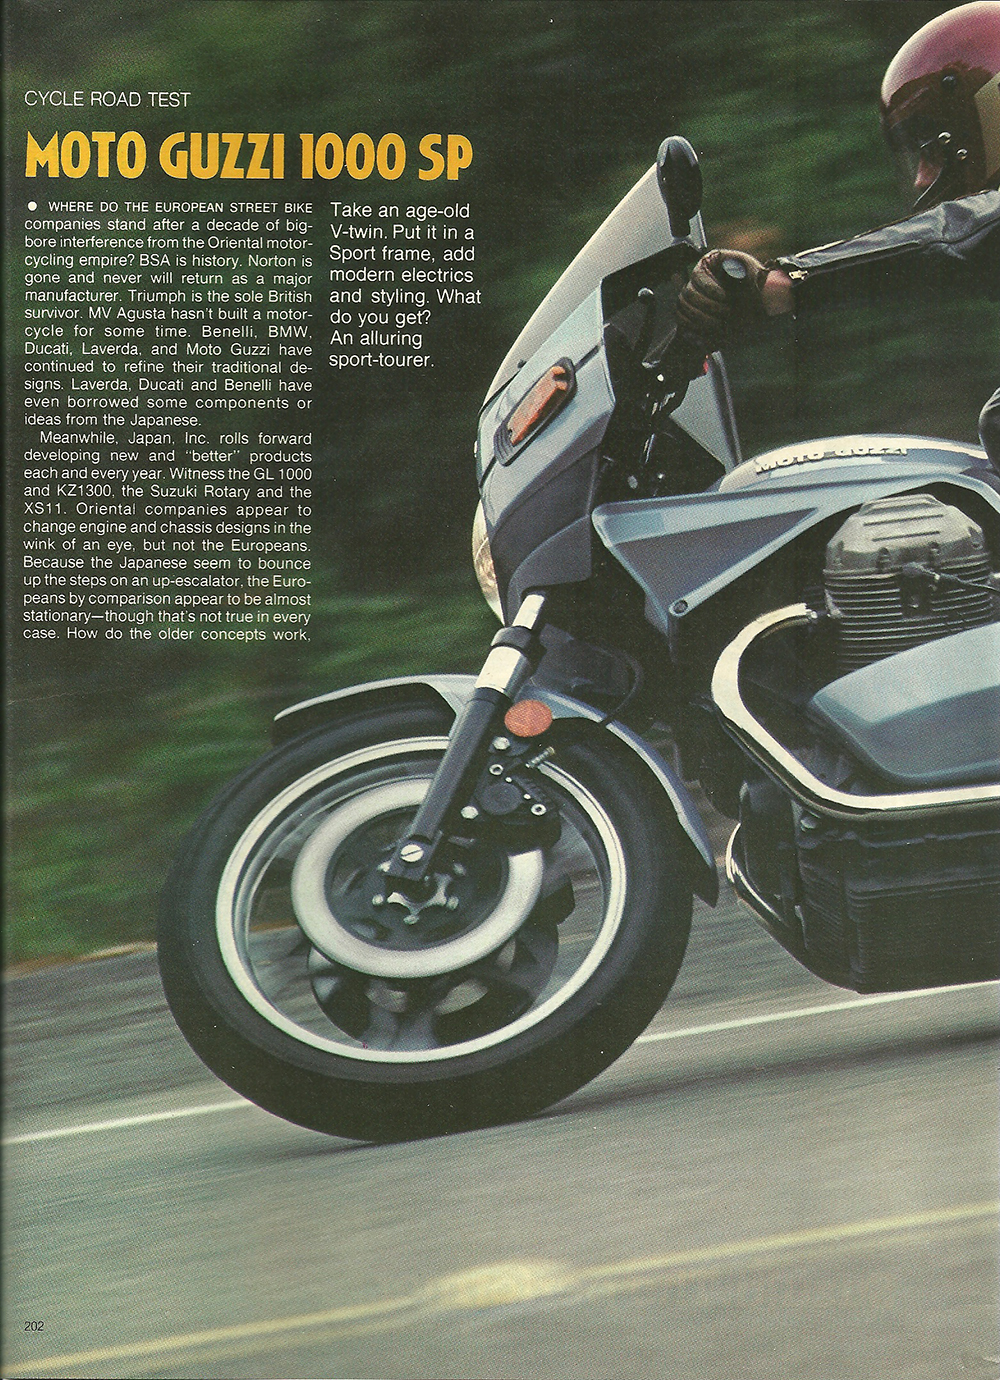 1979 Moto Guzzi 1000 SP road test 01.jpg